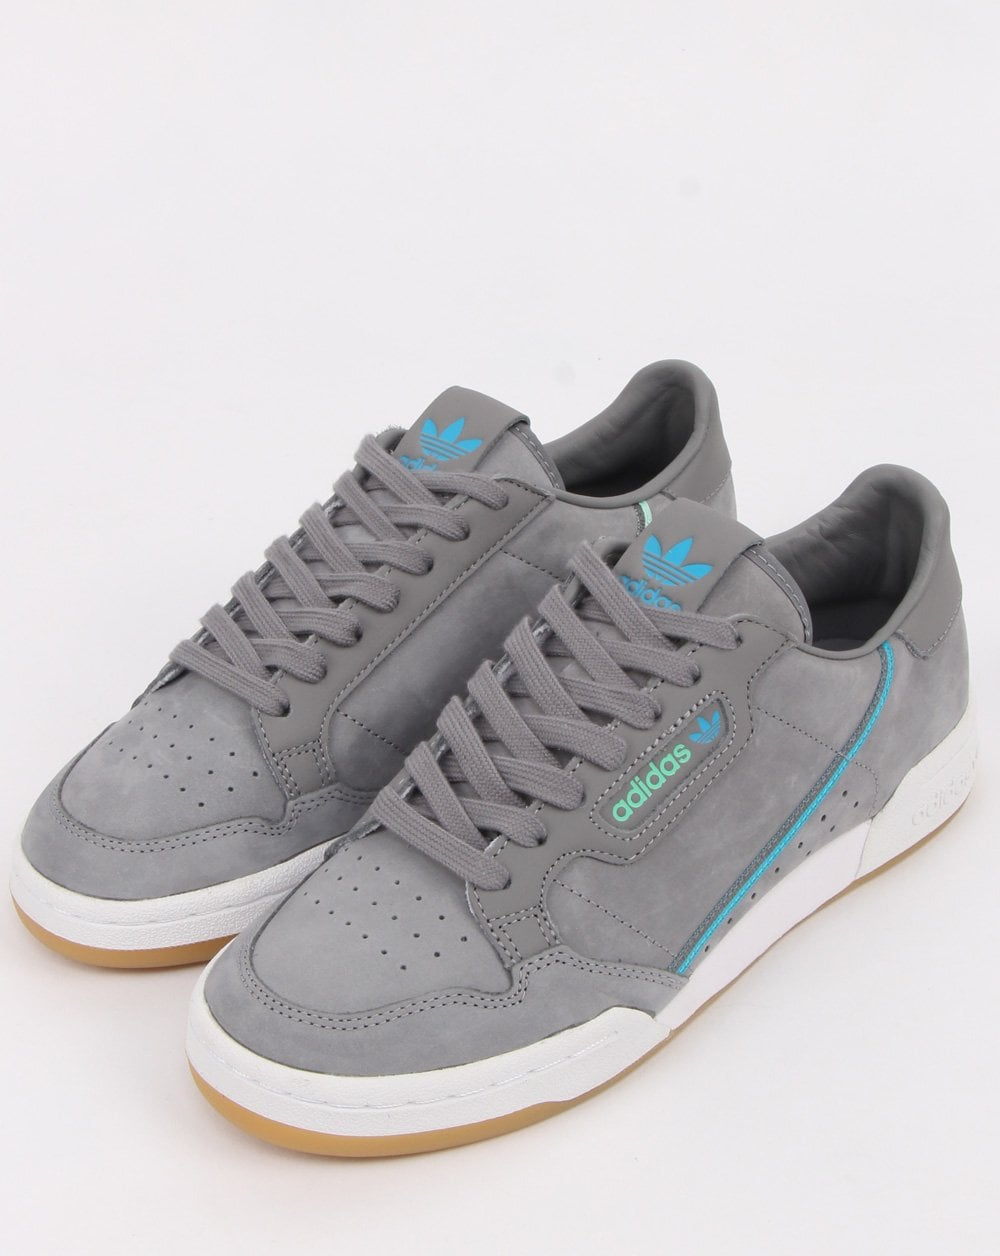 online retailer e3596 7a578 Adidas Continental 80 x TFL Trainers Grey/blue/green